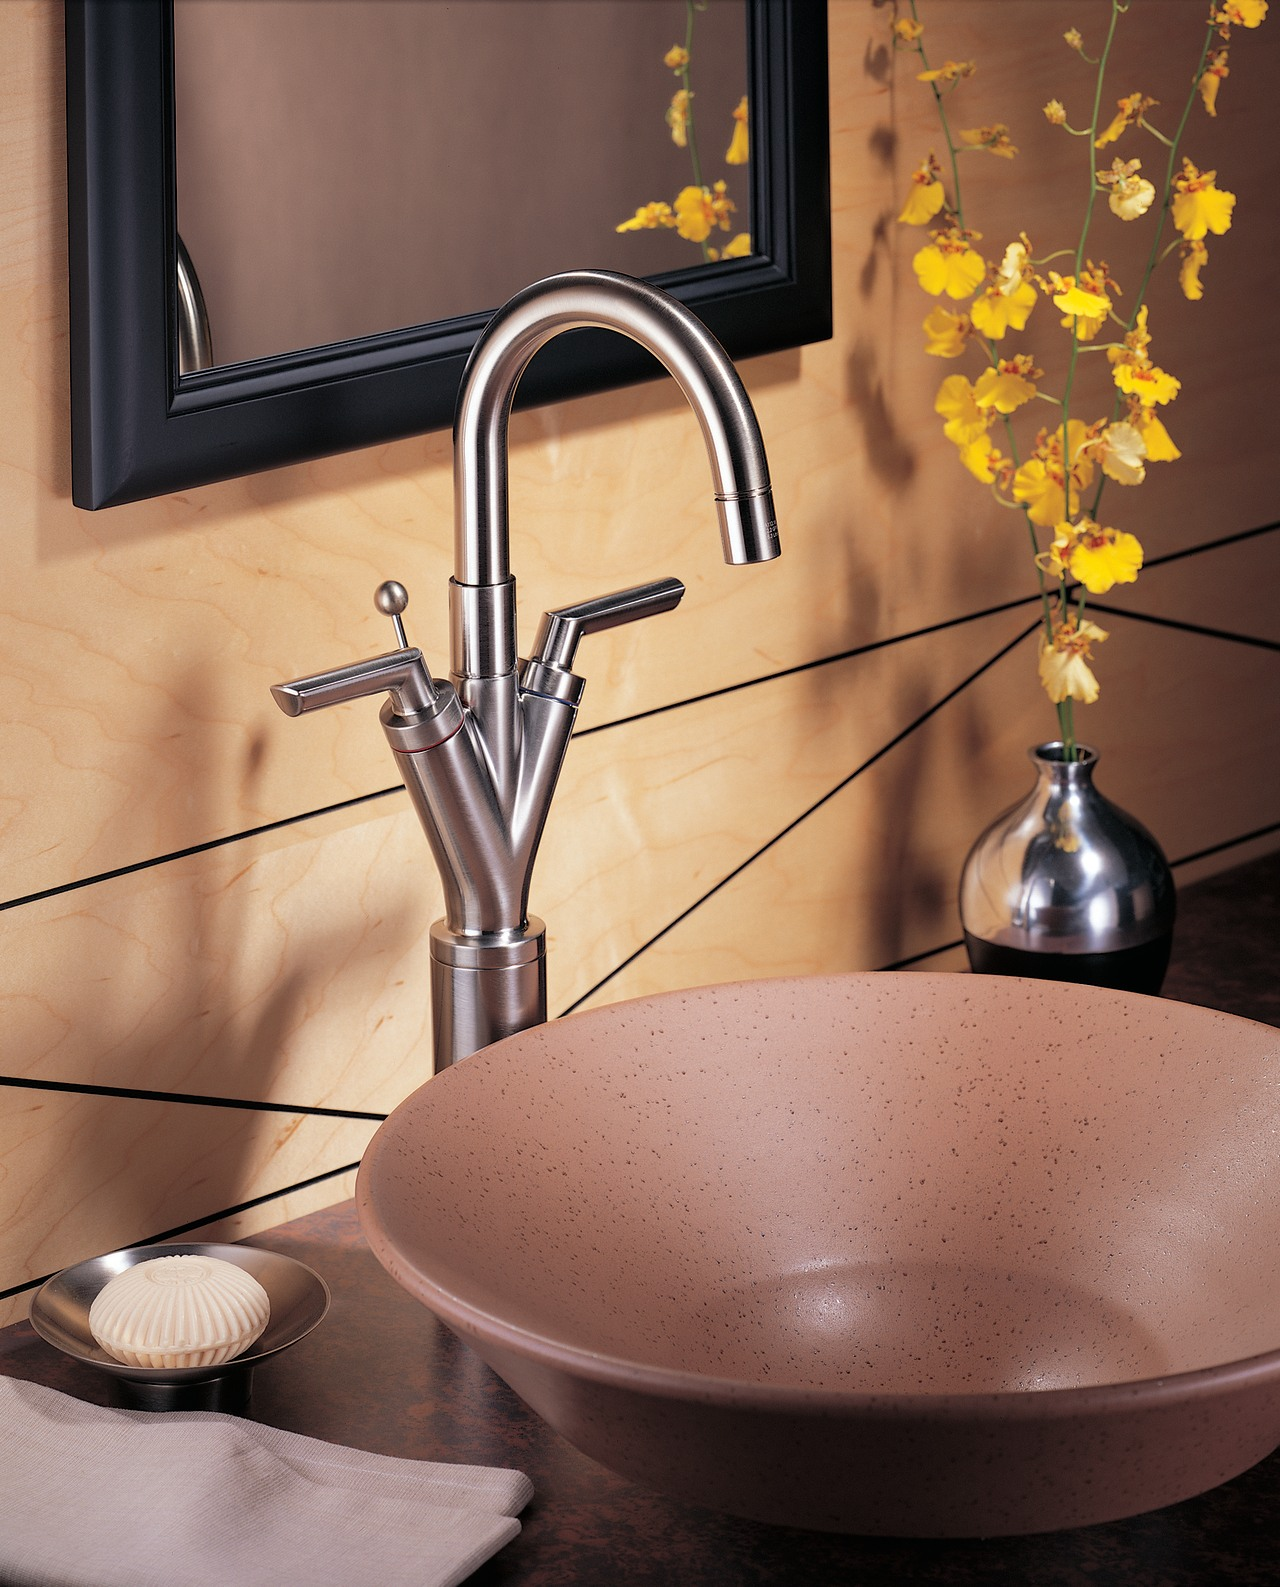 A V-shape faucet ceramic, cookware and bakeware, countertop, plumbing fixture, product design, sink, tap, red